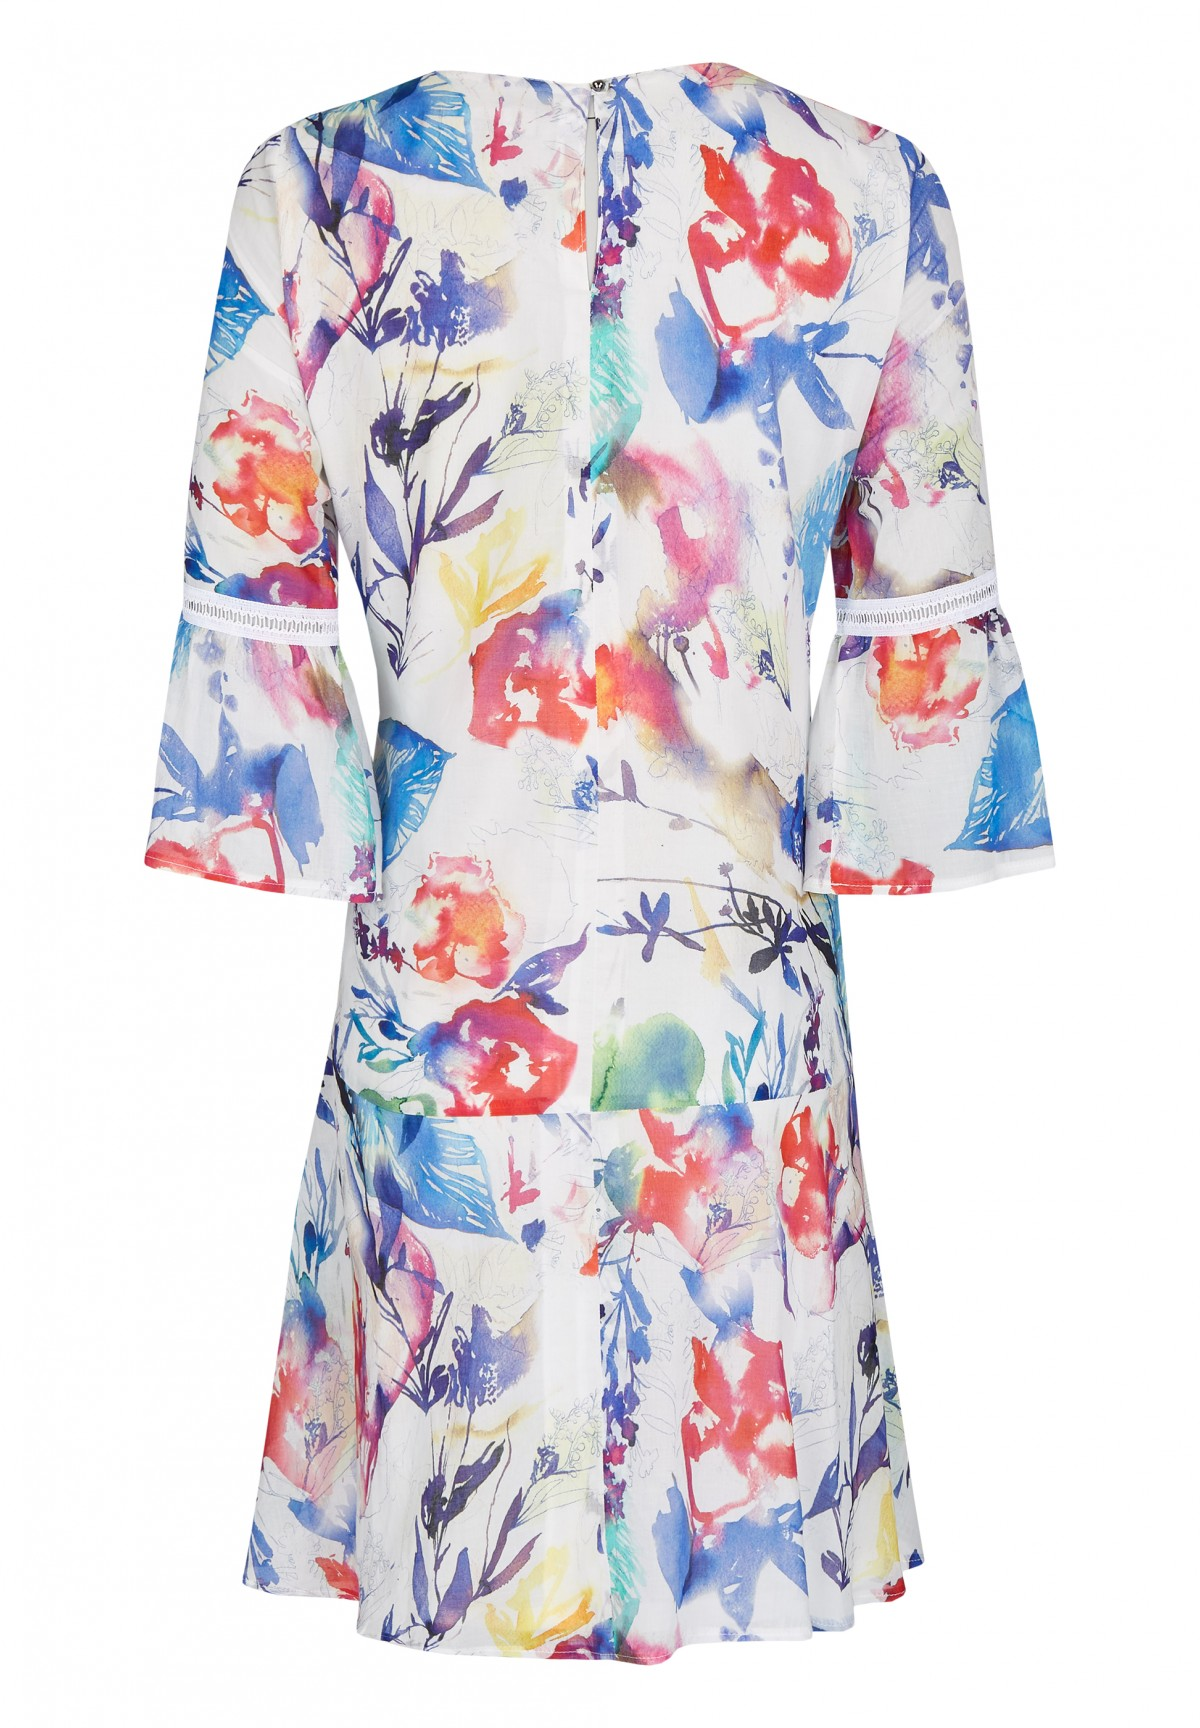 Robe mi-longue taille basse  manches 3/4  motif floral /